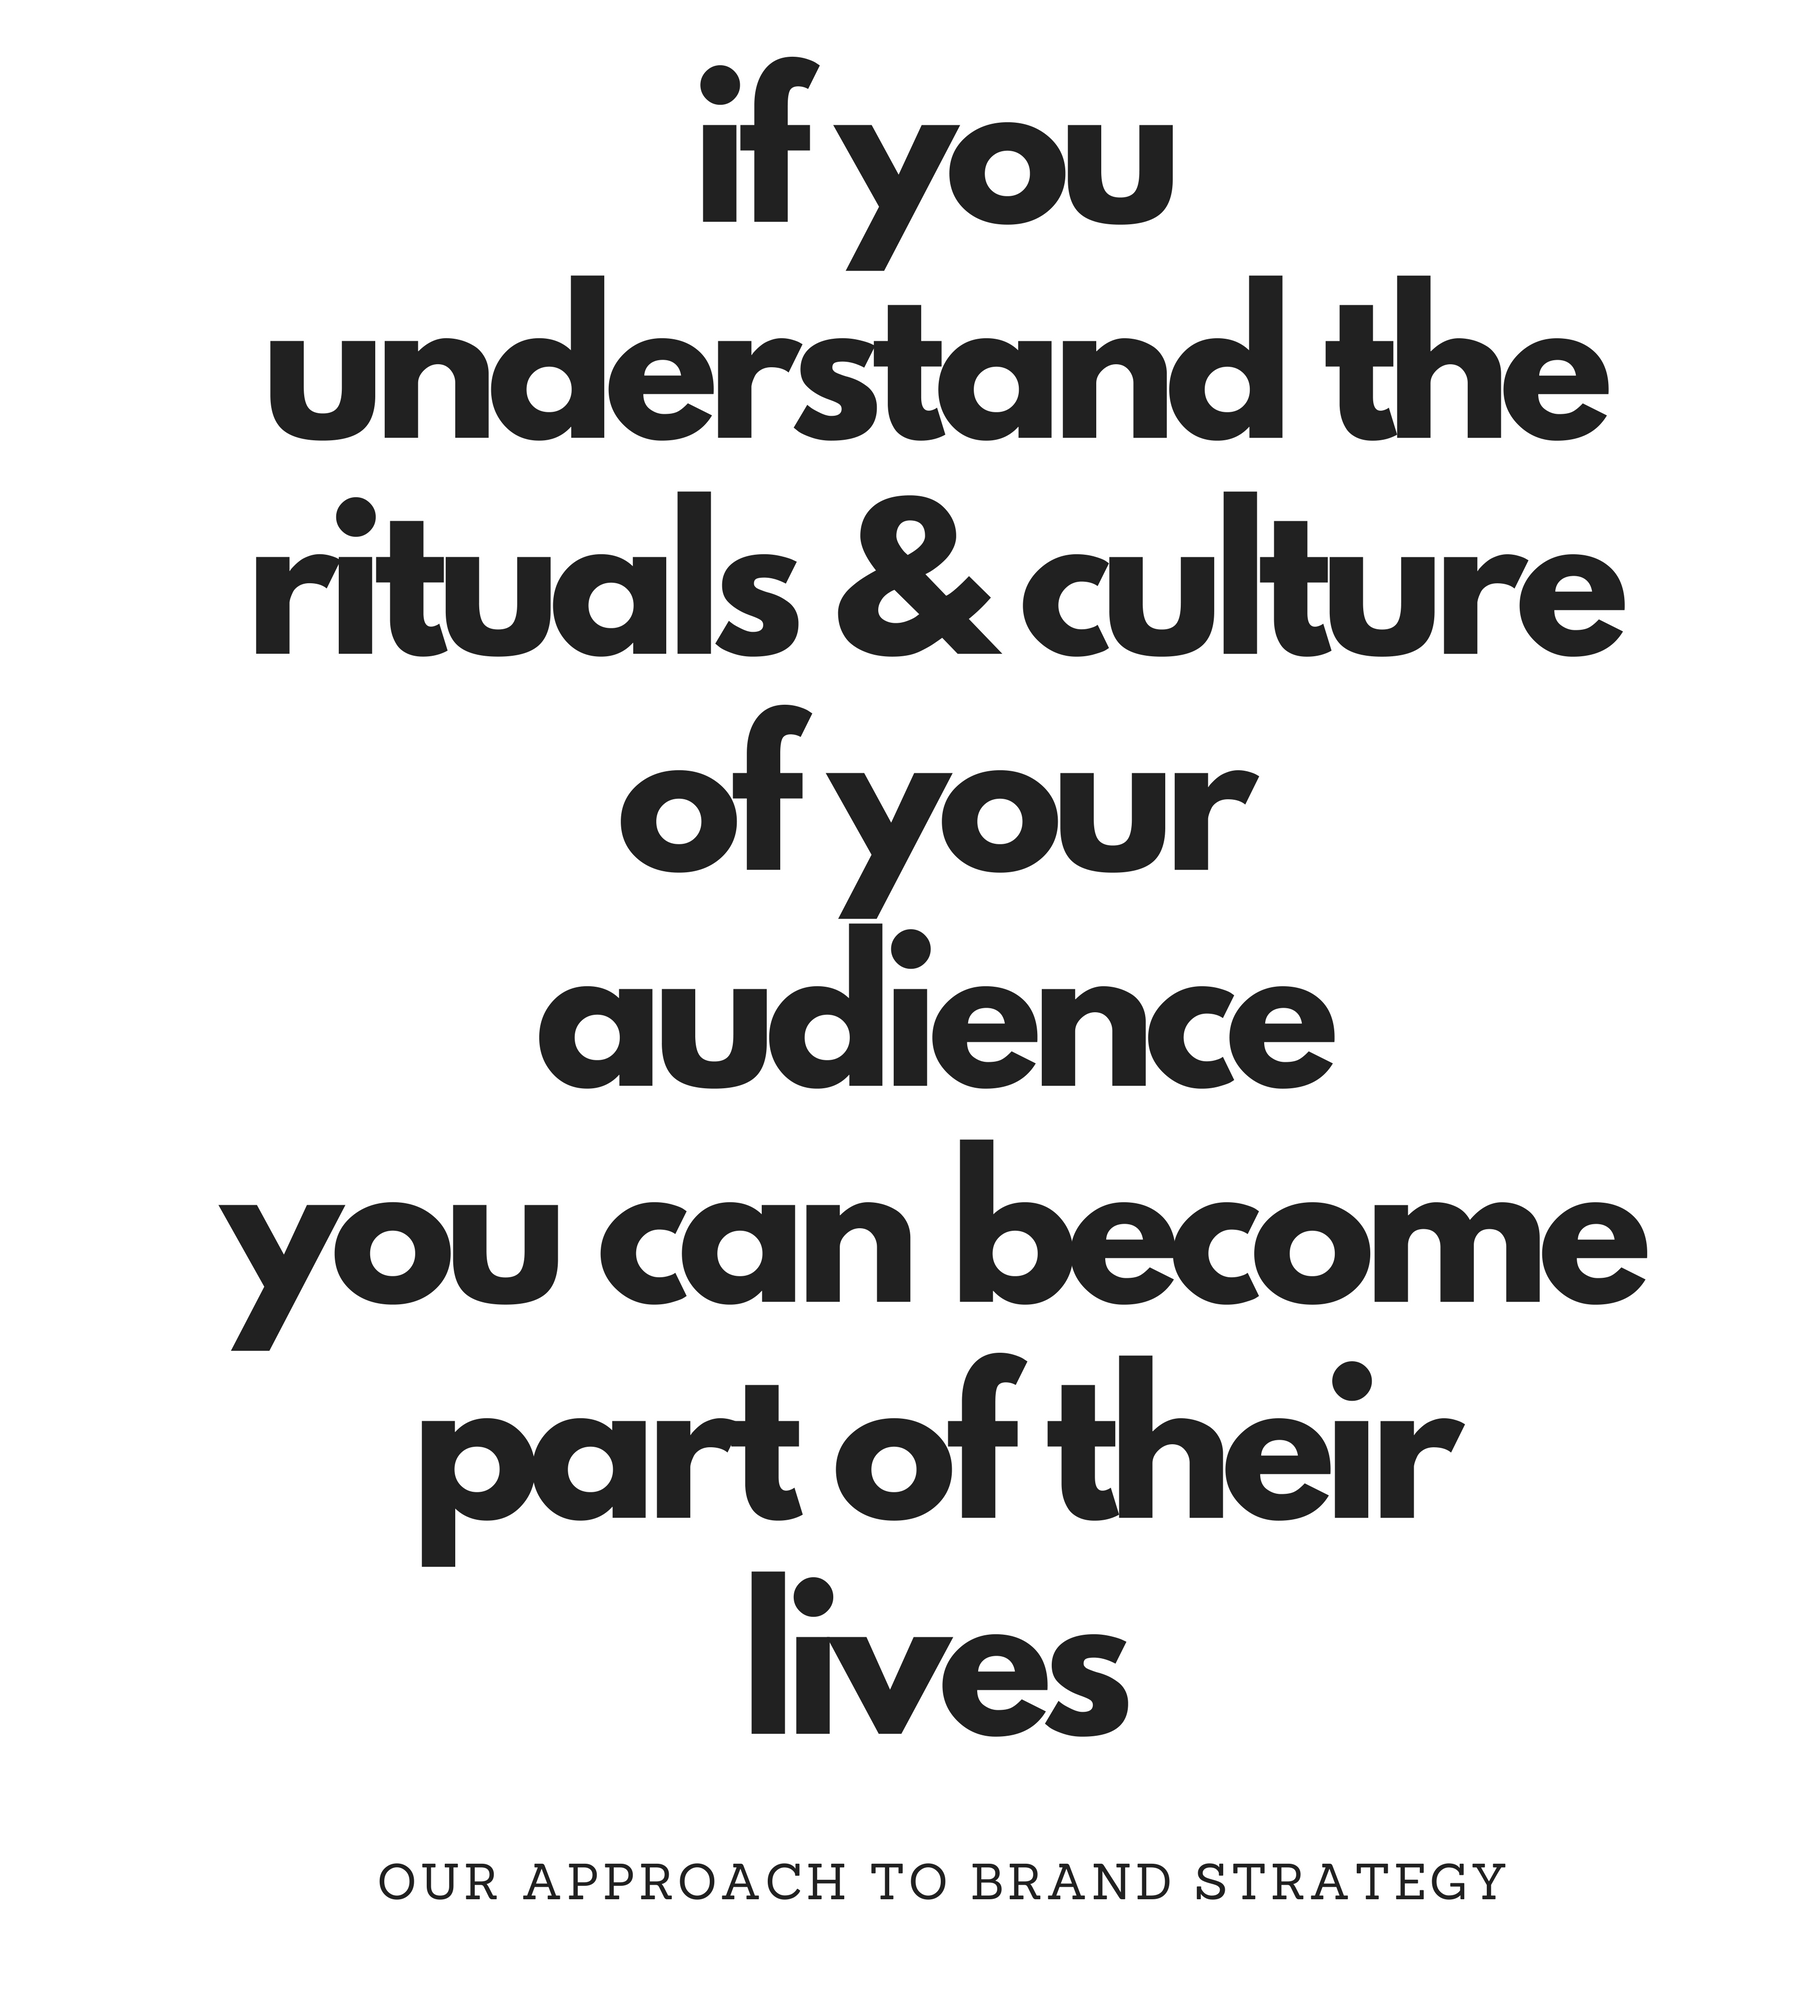 Understand rituals anc cultures of your audience to become part of their lives